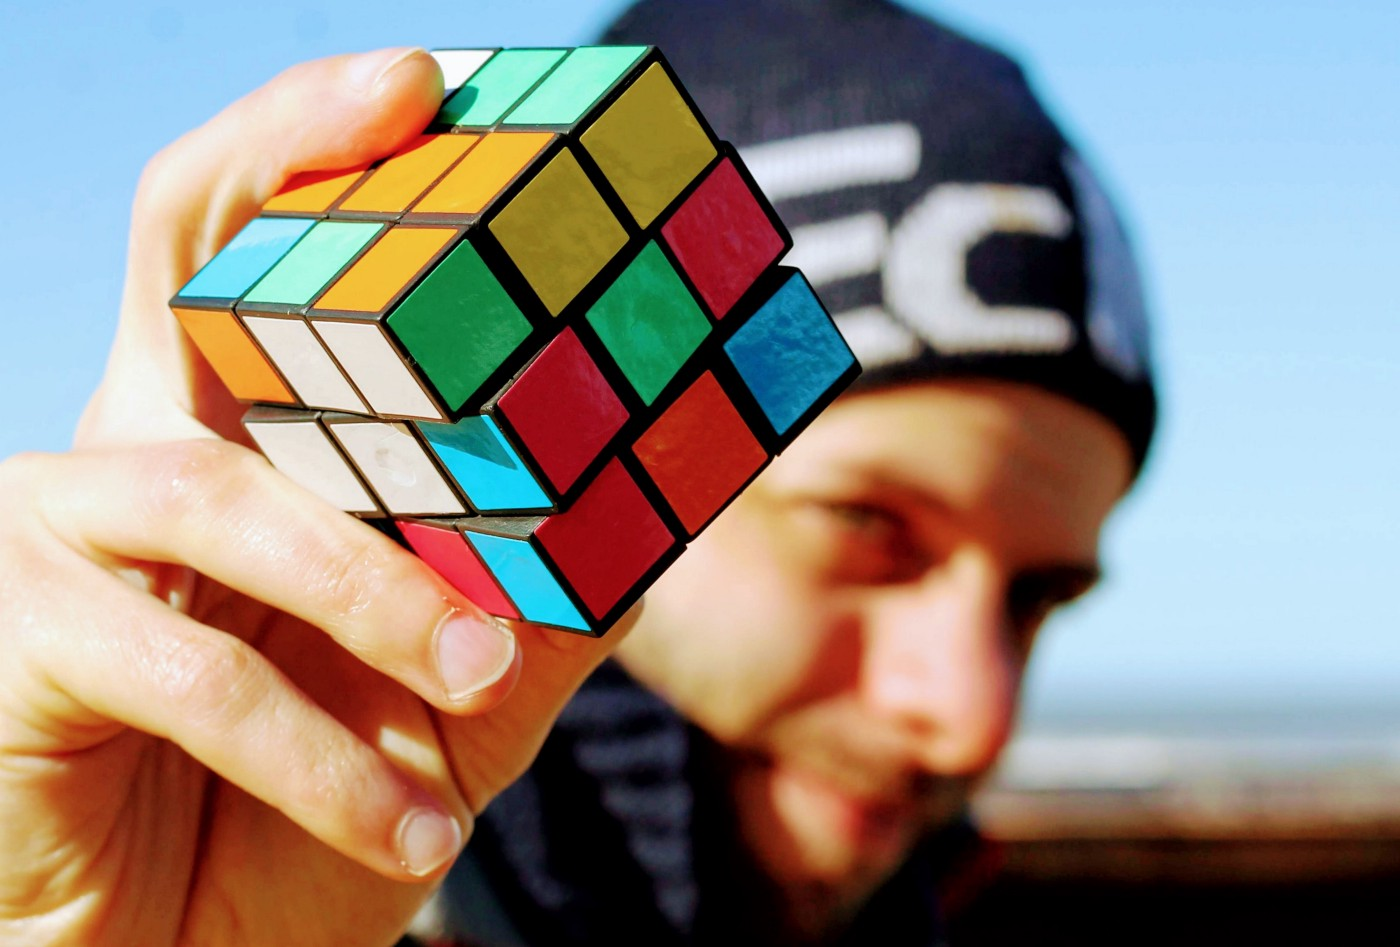 A man holding an unsolved rubik's cube